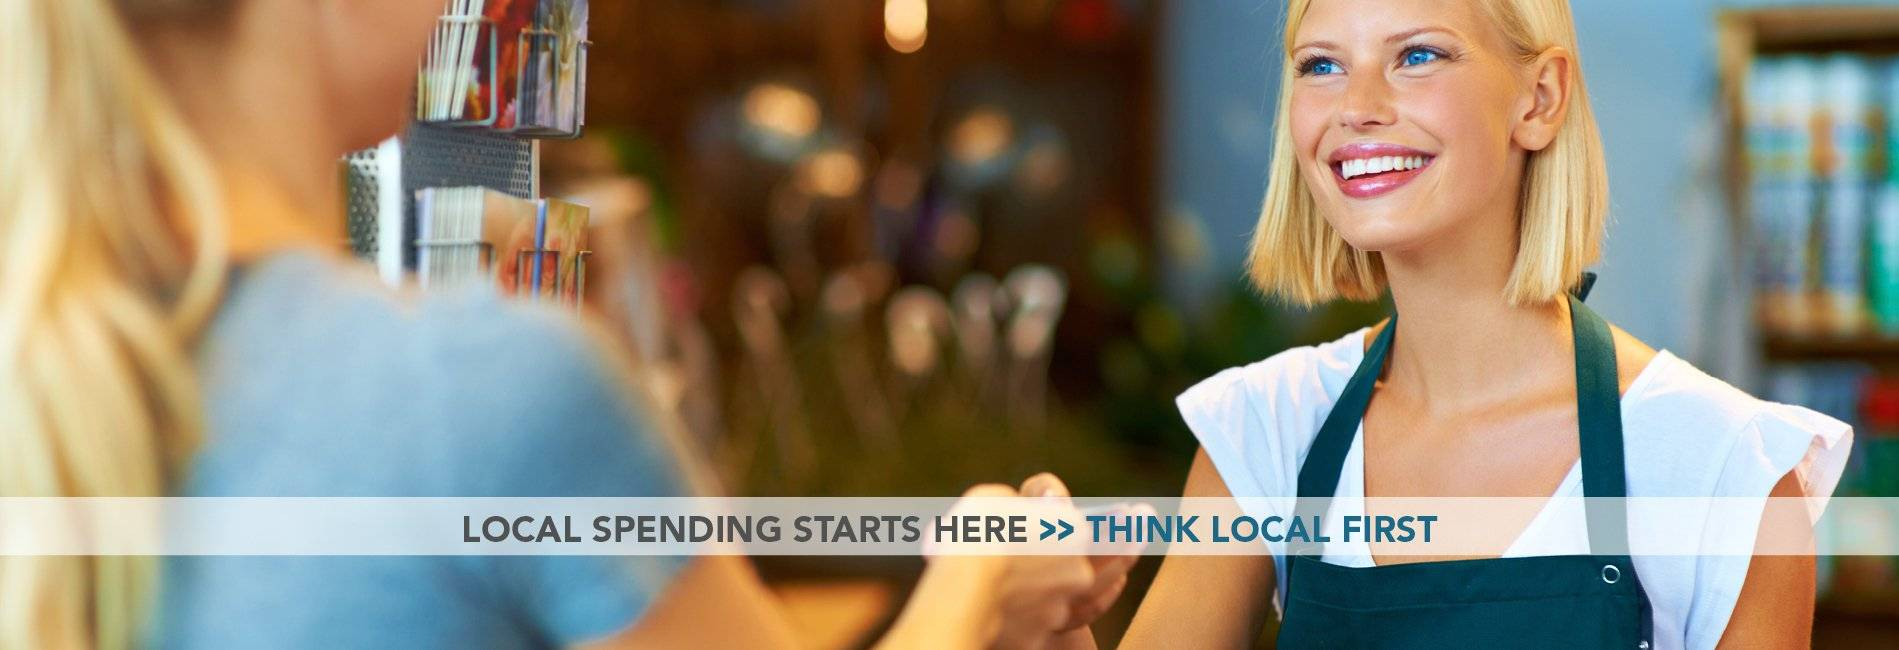 North San Diego Business Chamber - Think Local First